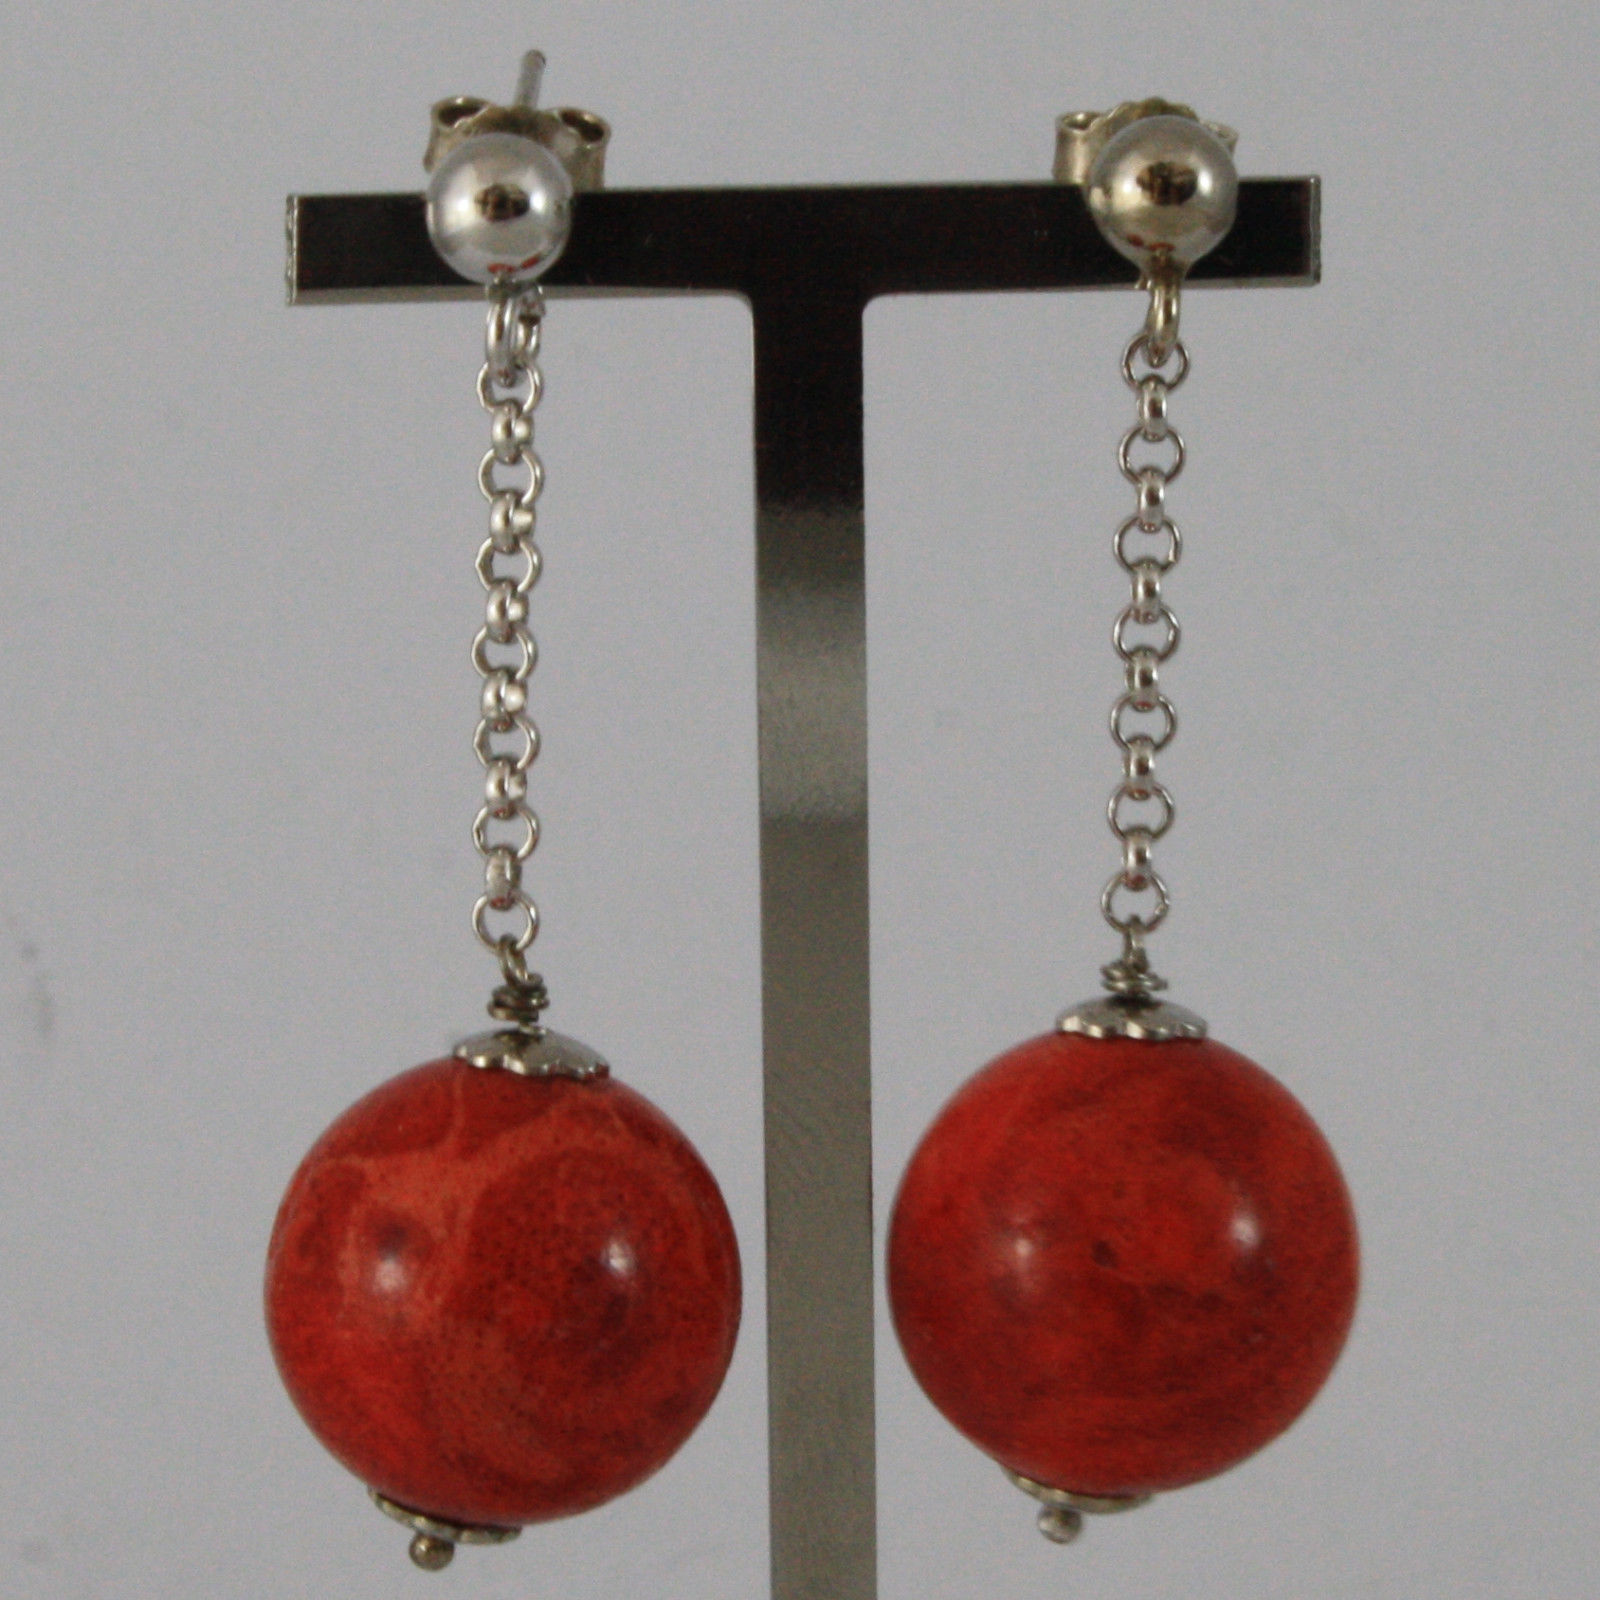 .925 SILVER RHODIUM EARRINGS WITH RED MADREPORA LENGTH 1,9 IN